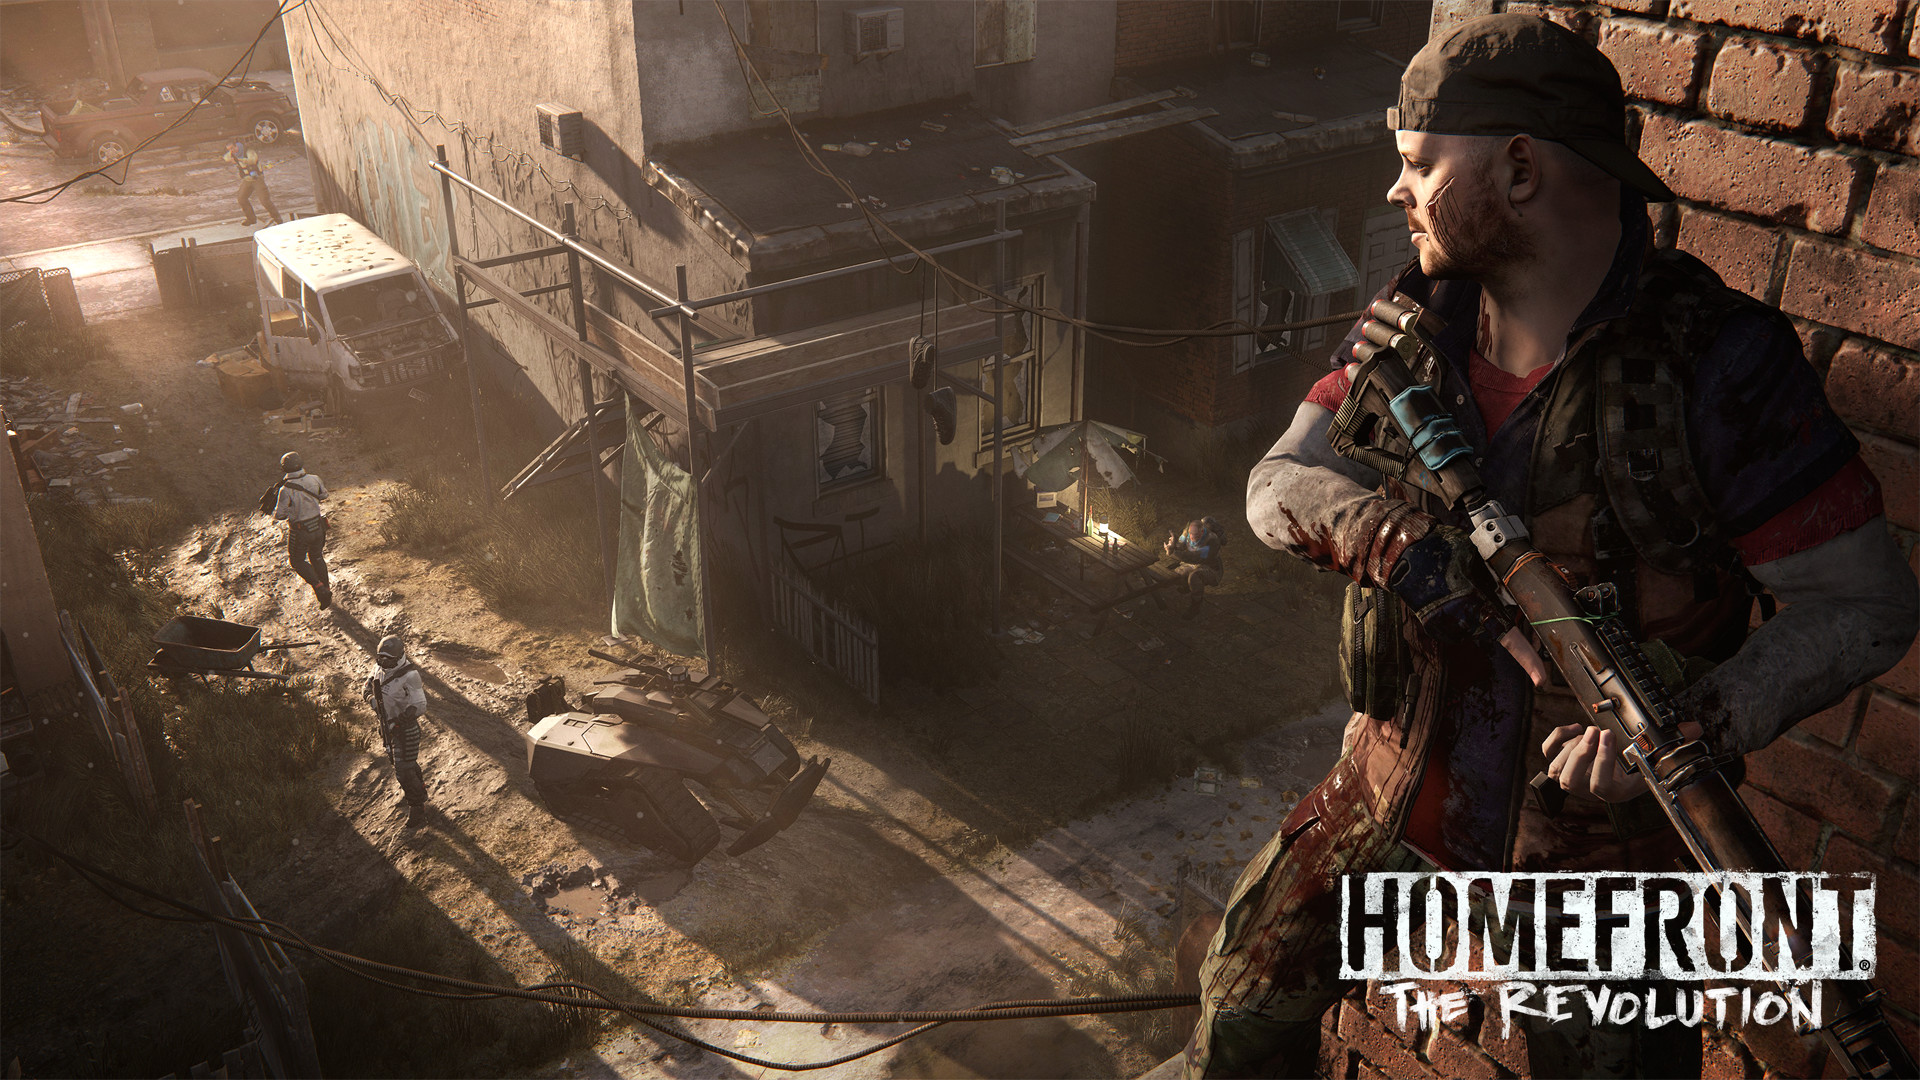 Res: 1920x1080, Homefront: The Revolution Ignites America - HD Wallpapers - American  Revolution PNG HD